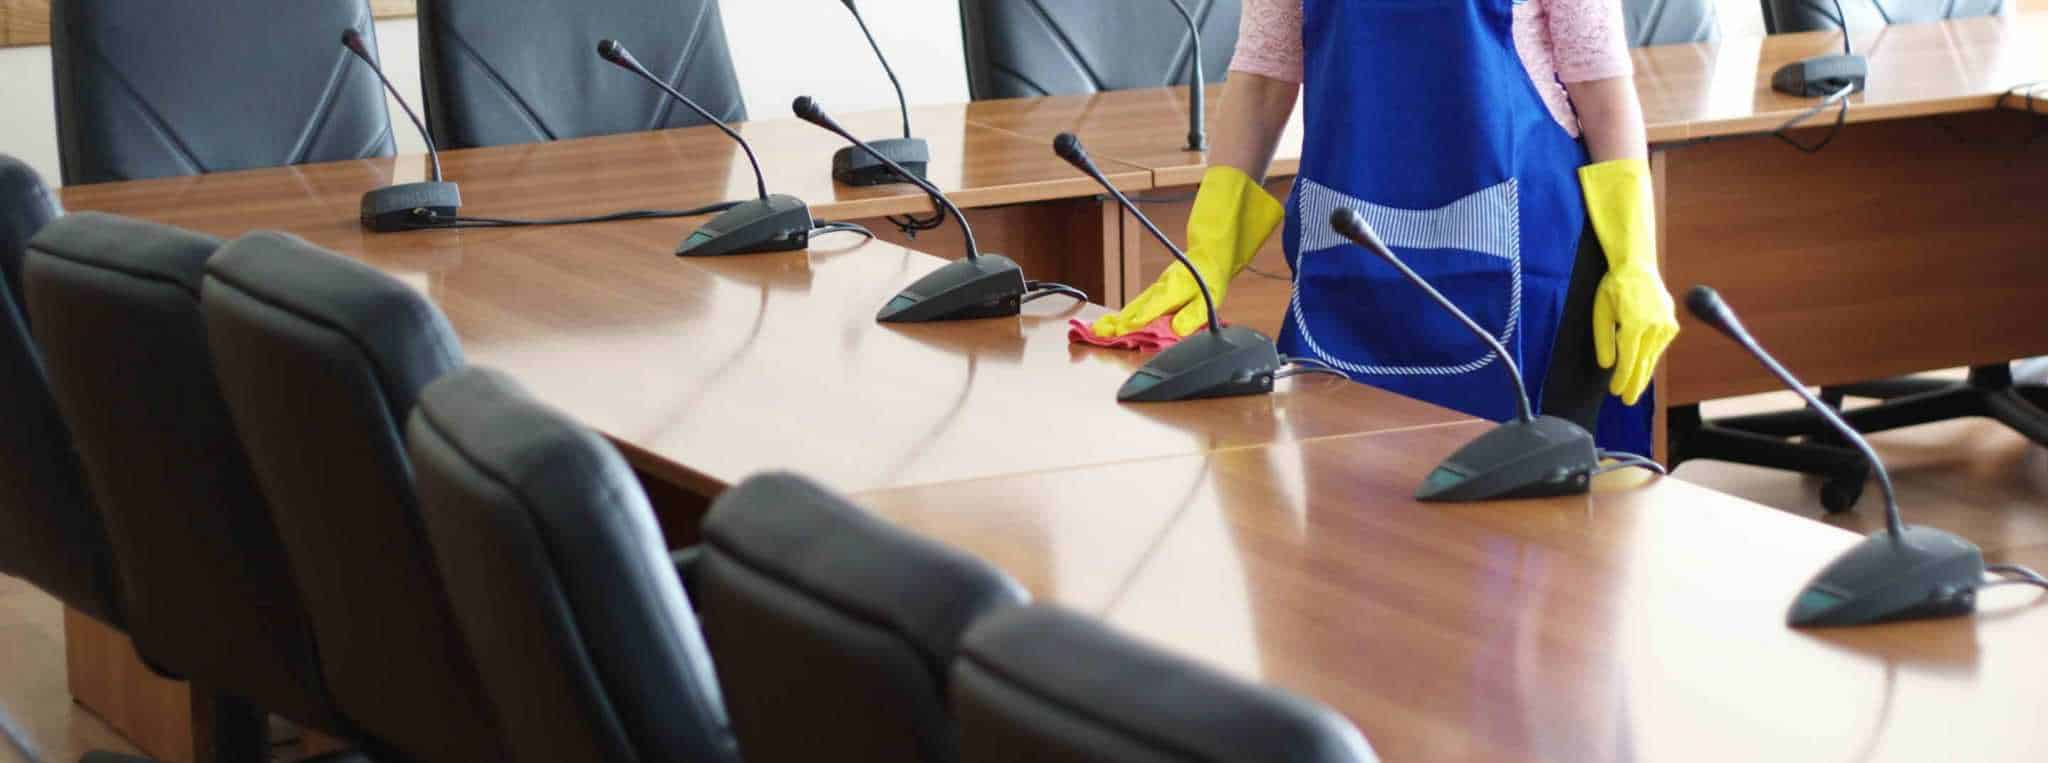 your office customers contact services with joilet rnb janitorial good of il free receive commercial impression us make estimate cleaning joliet on to flawless